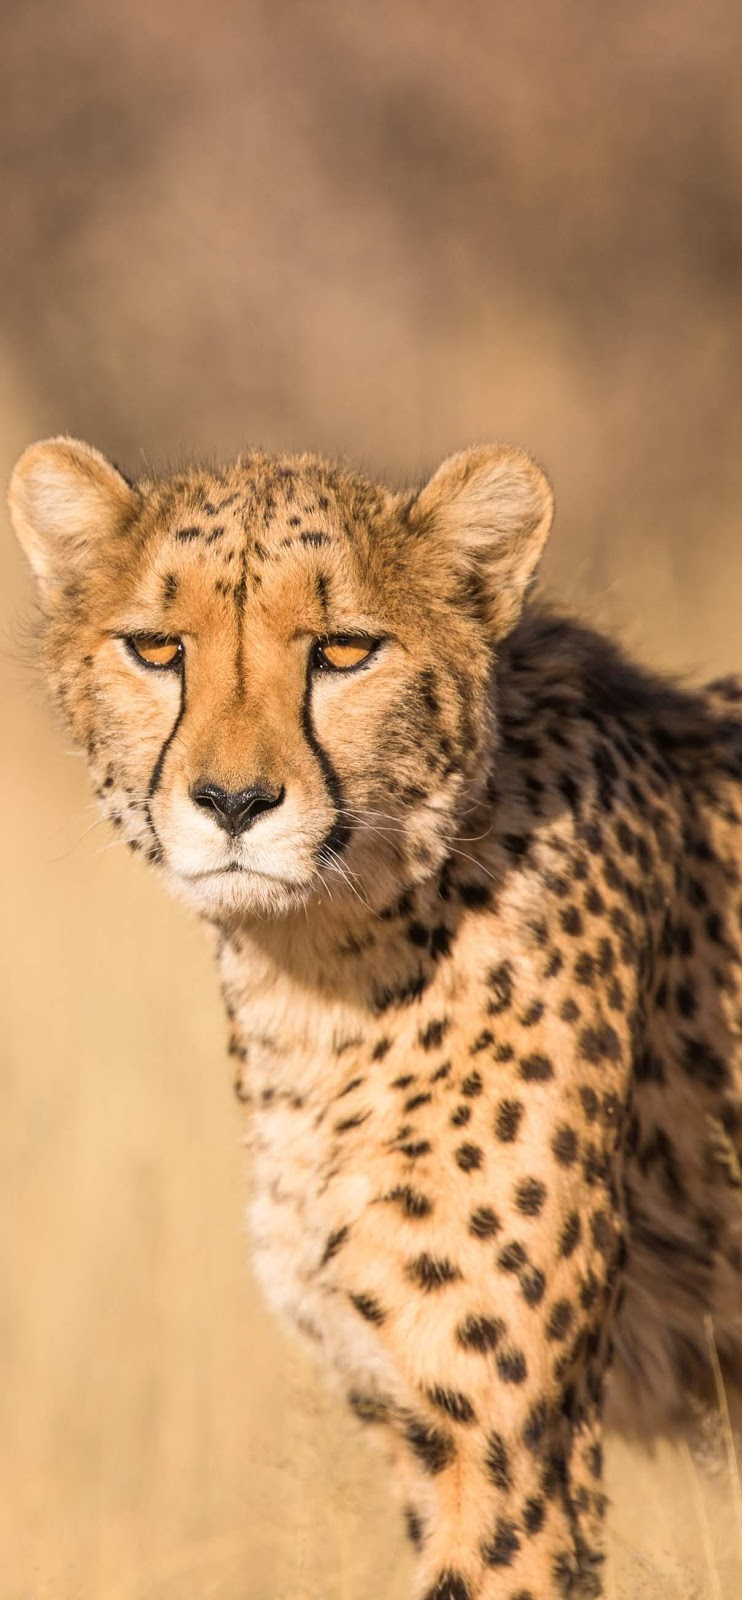 Photo of a cheetah.